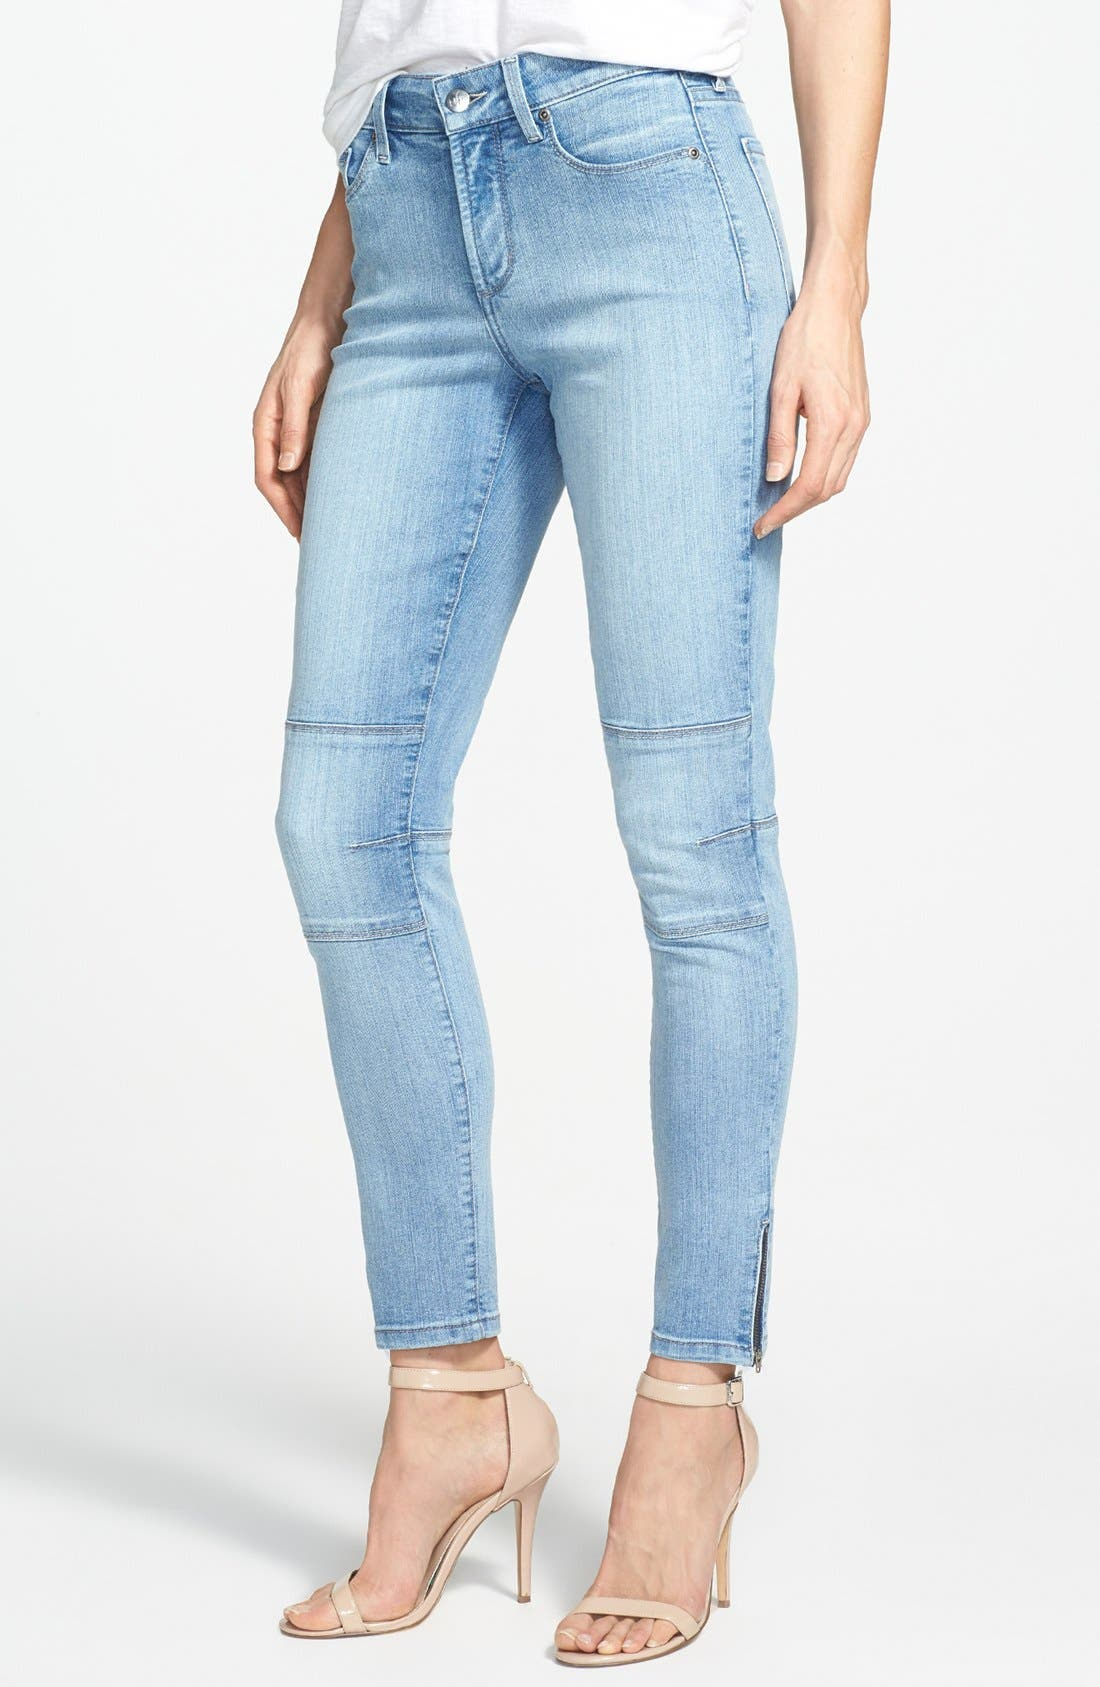 Main Image - NYDJ 'Kerry' Stretch Ankle Super Skinny Jeans (Palos Verdes) (Regular & Petite)